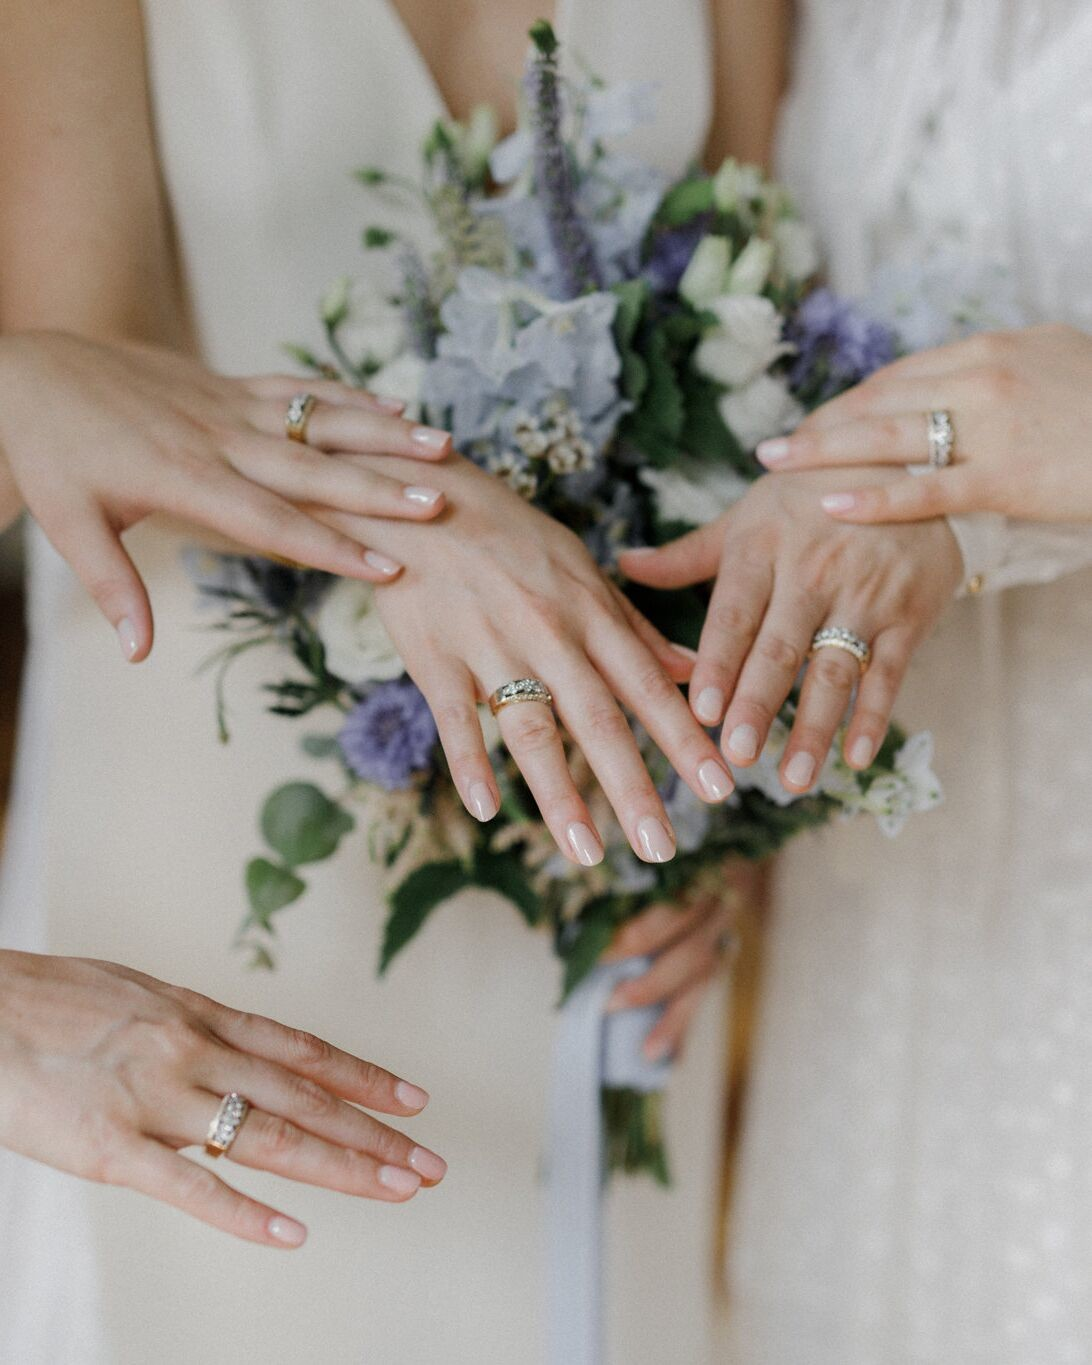 custom rings made for bride and sisters